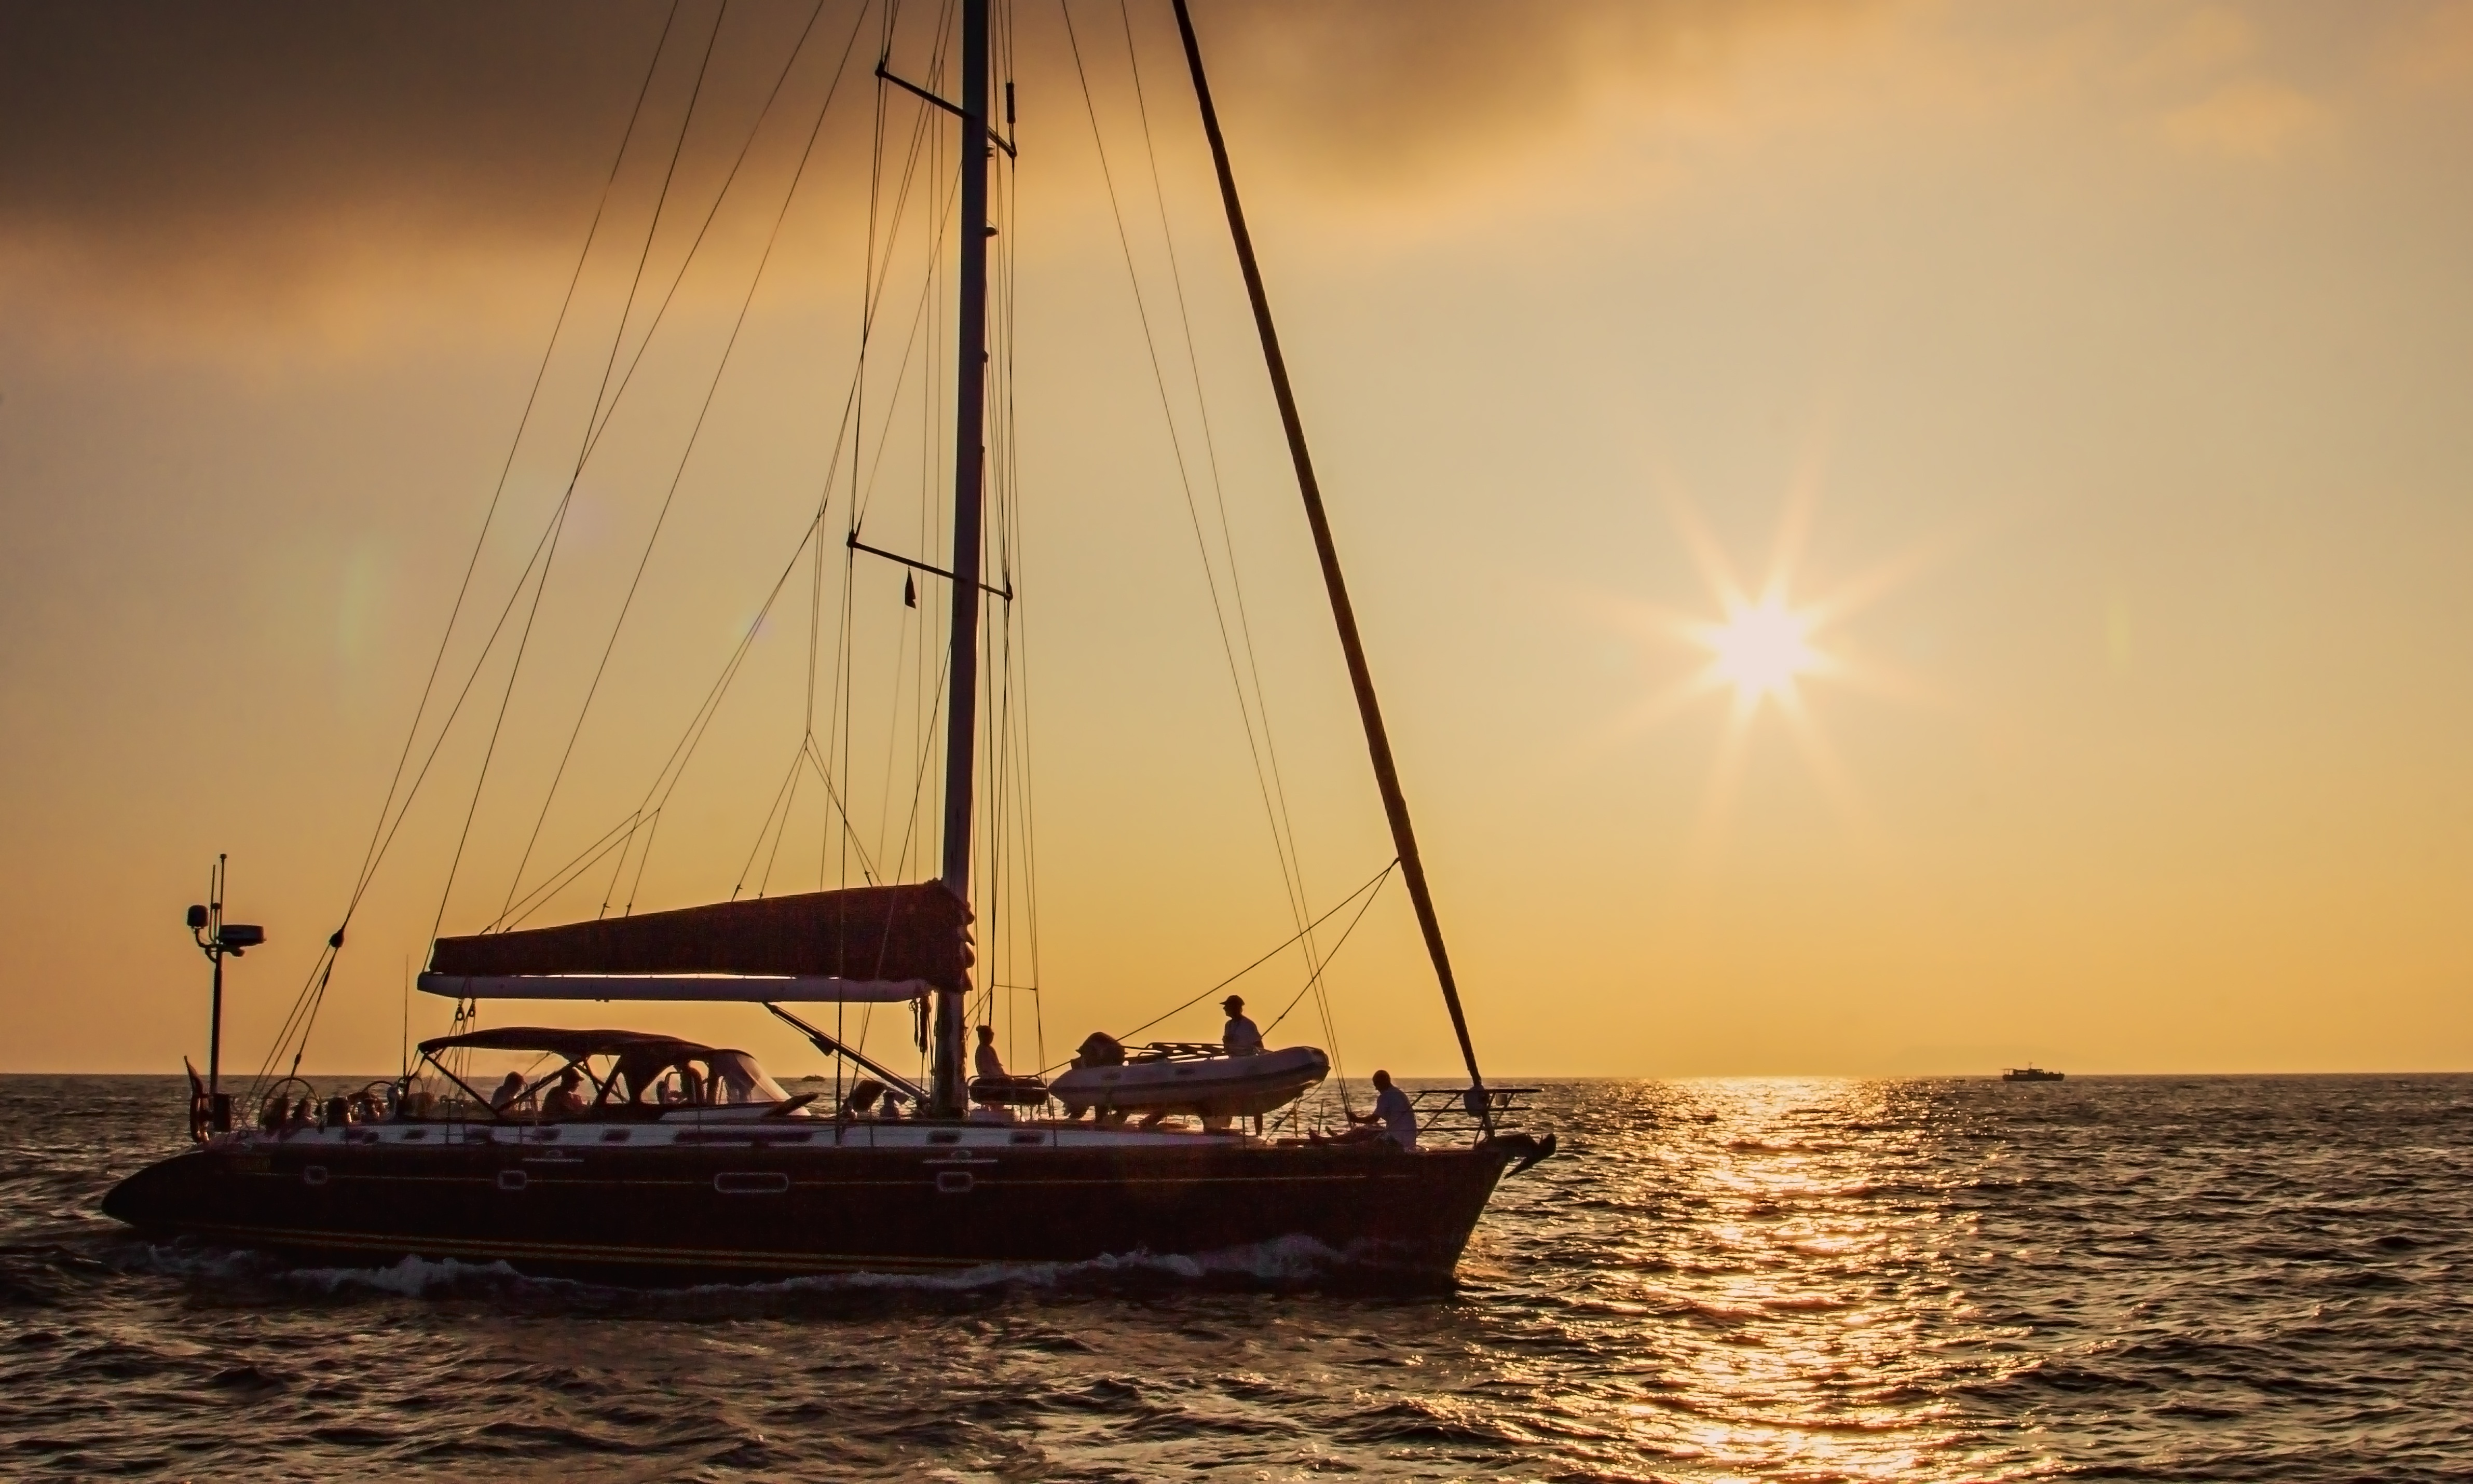 Yacht against the sunset in Amur Bay